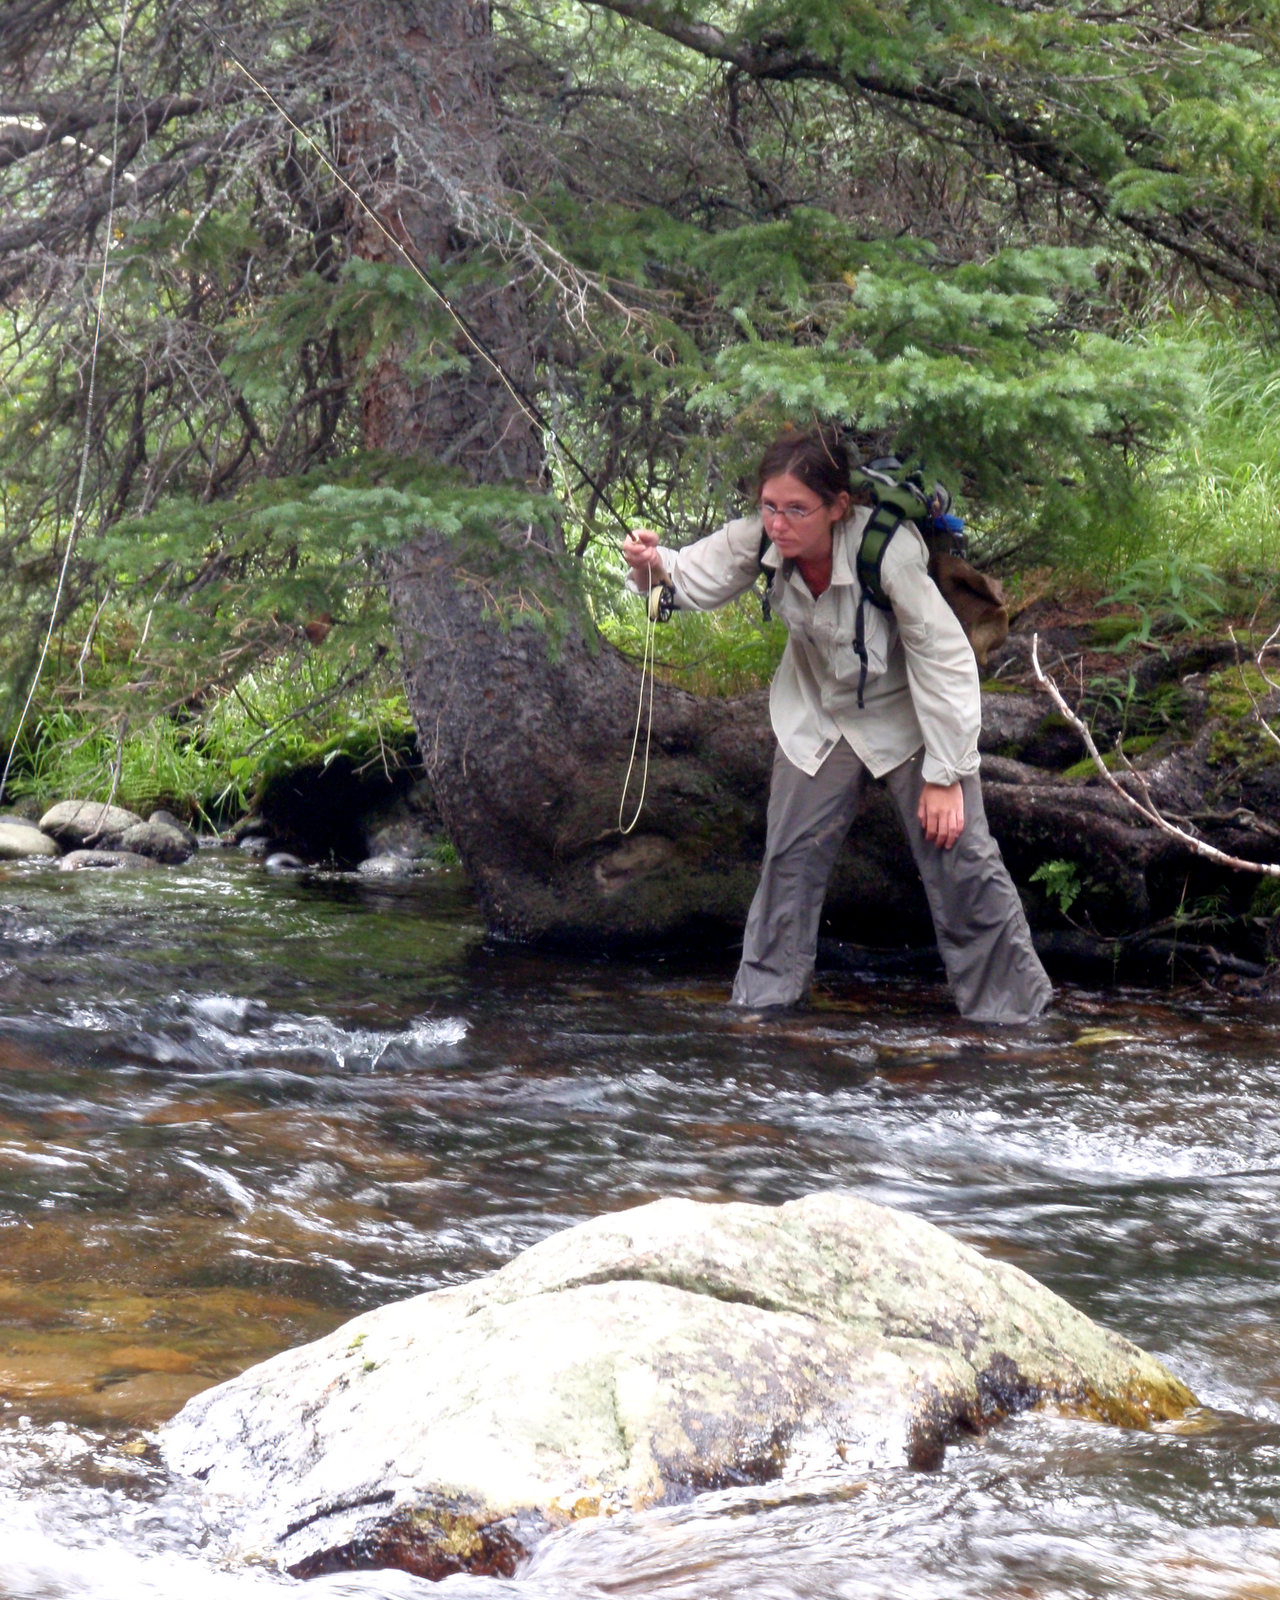 Colorado fly fishing reports january 2010 for Colorado fly fishing